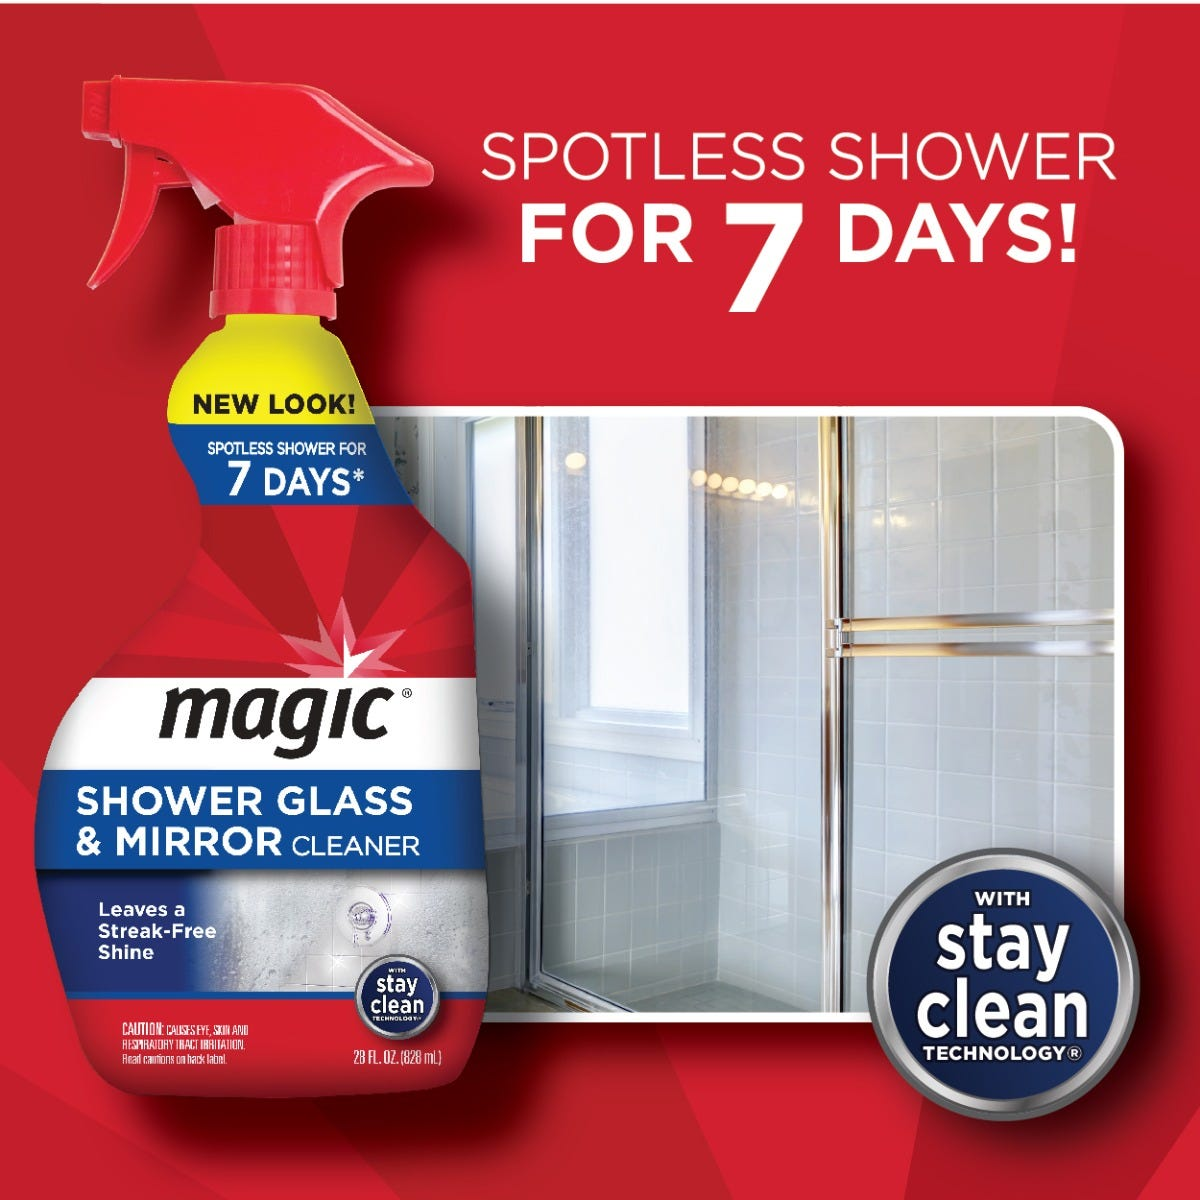 Magic Shower Glass & Mirror Cleaner